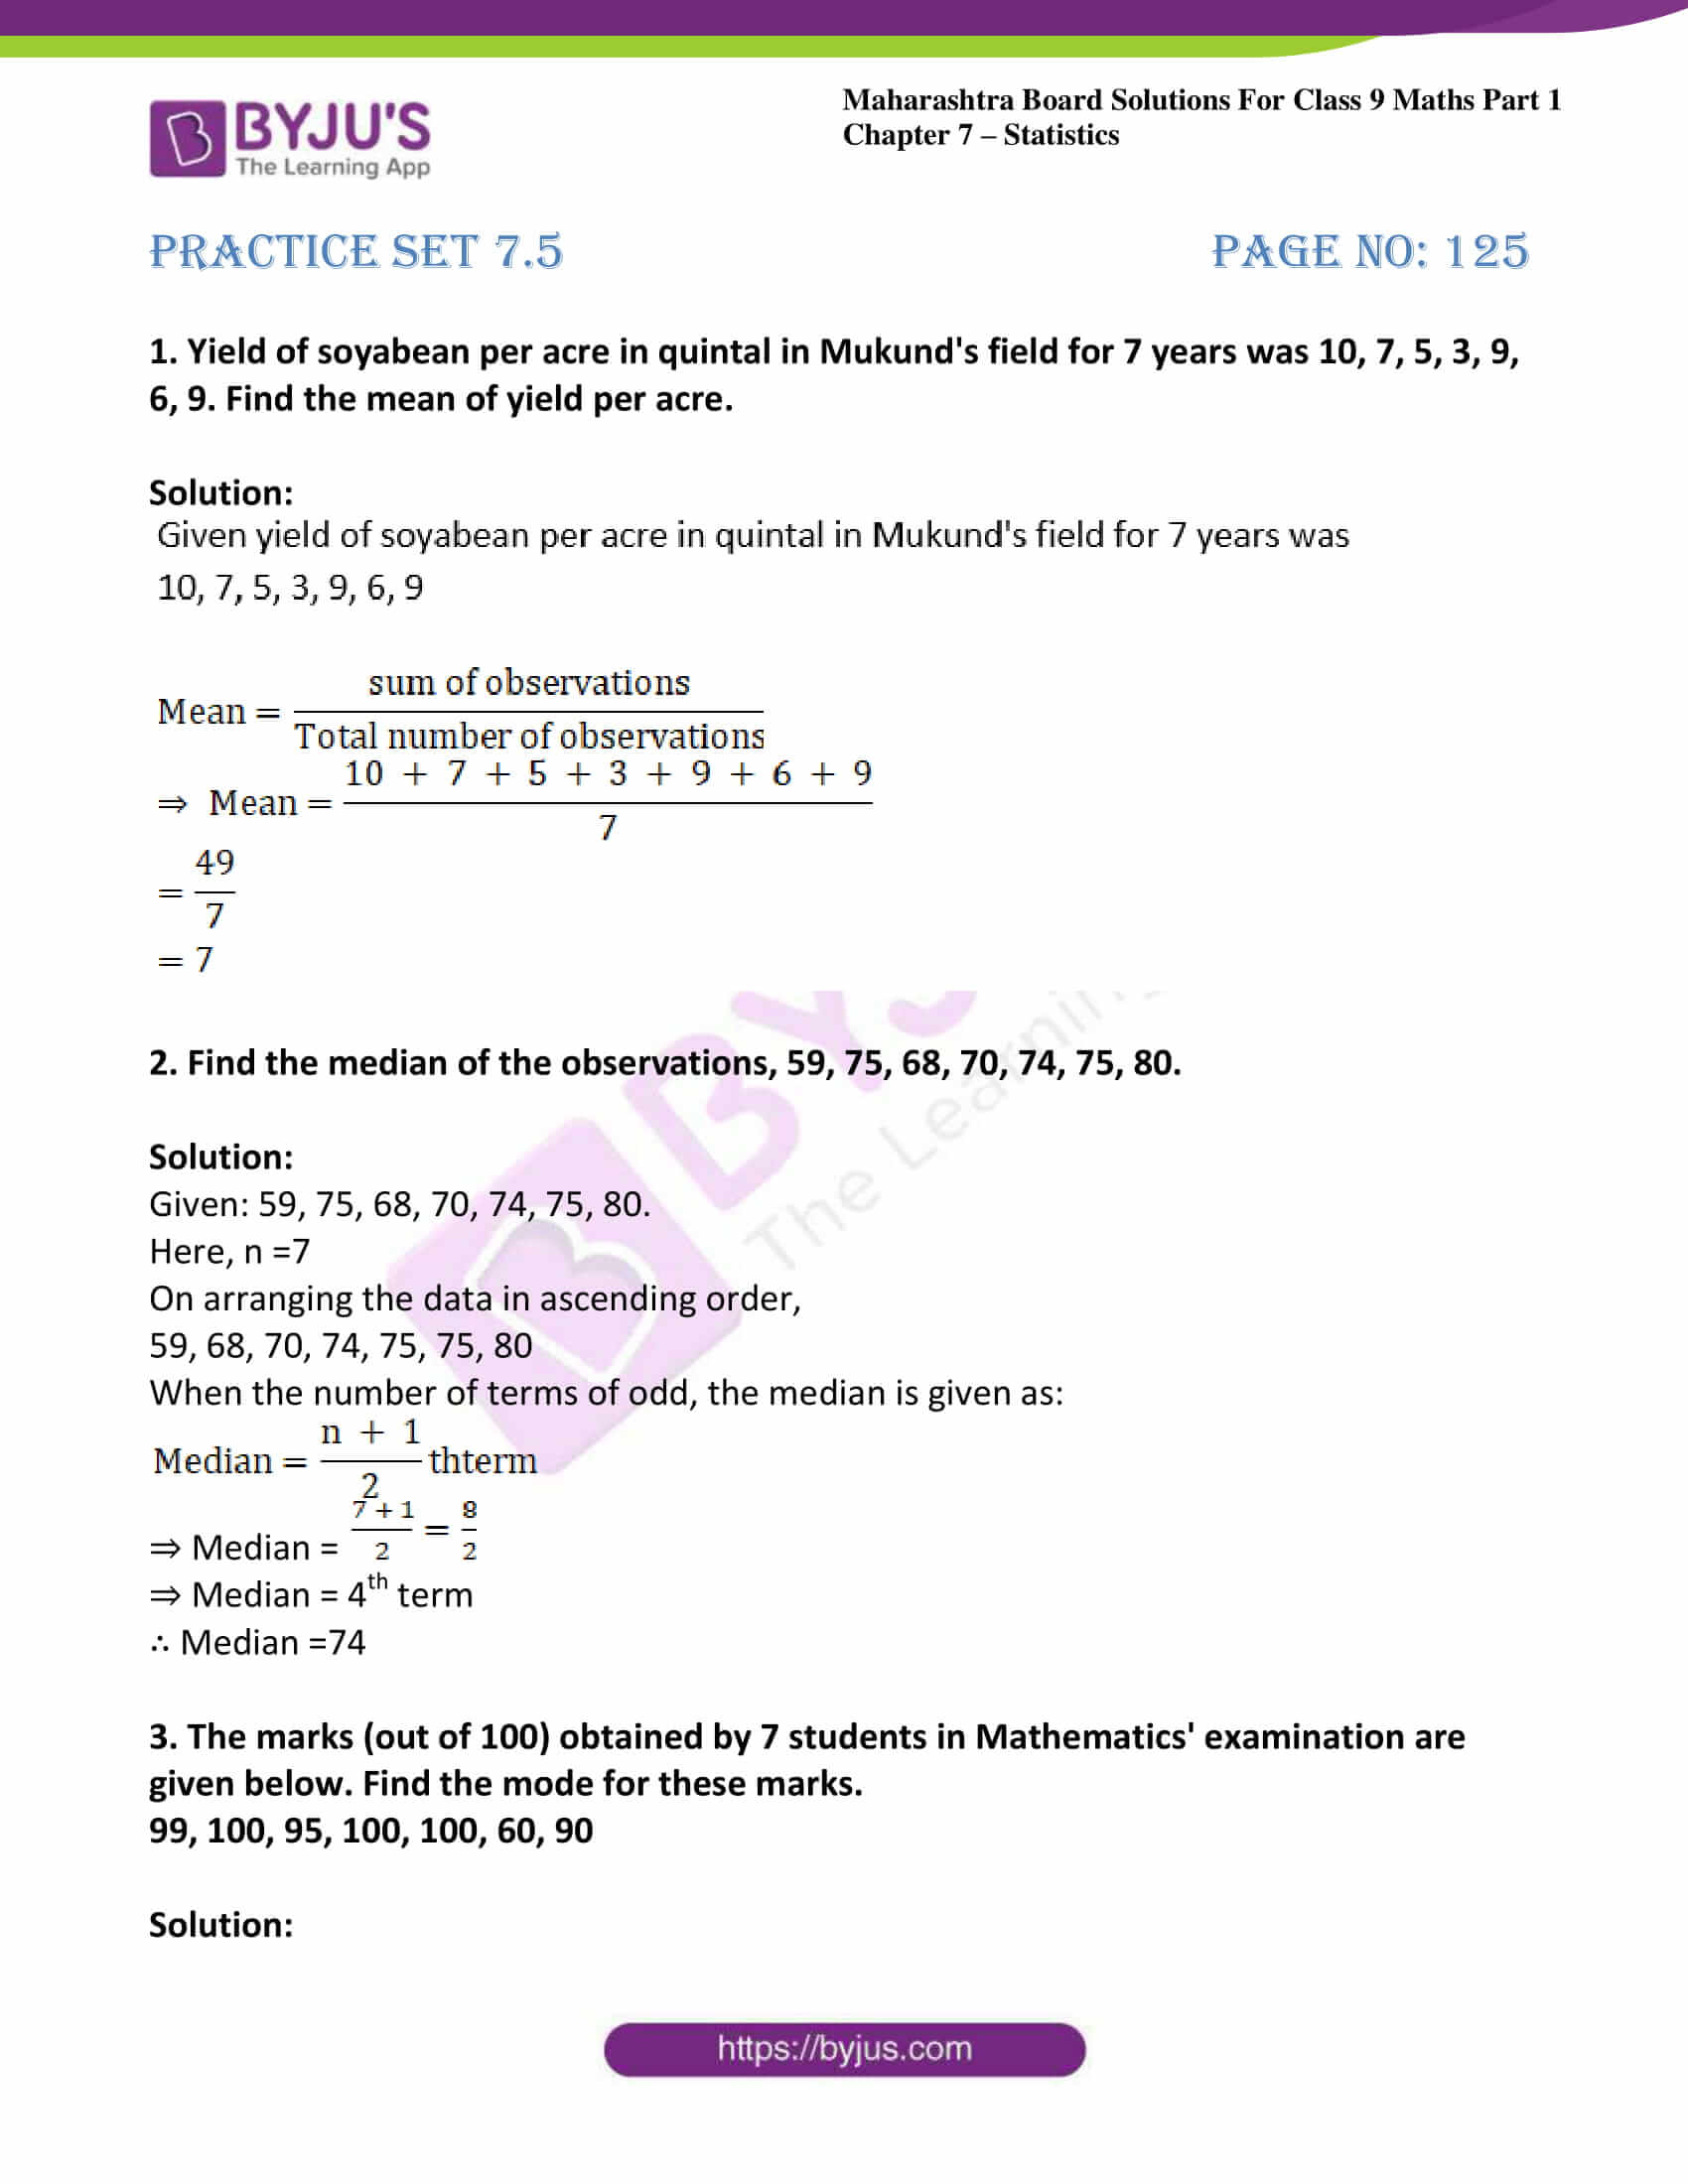 msbshse solutions for class 9 maths part 1 chapter 7 15